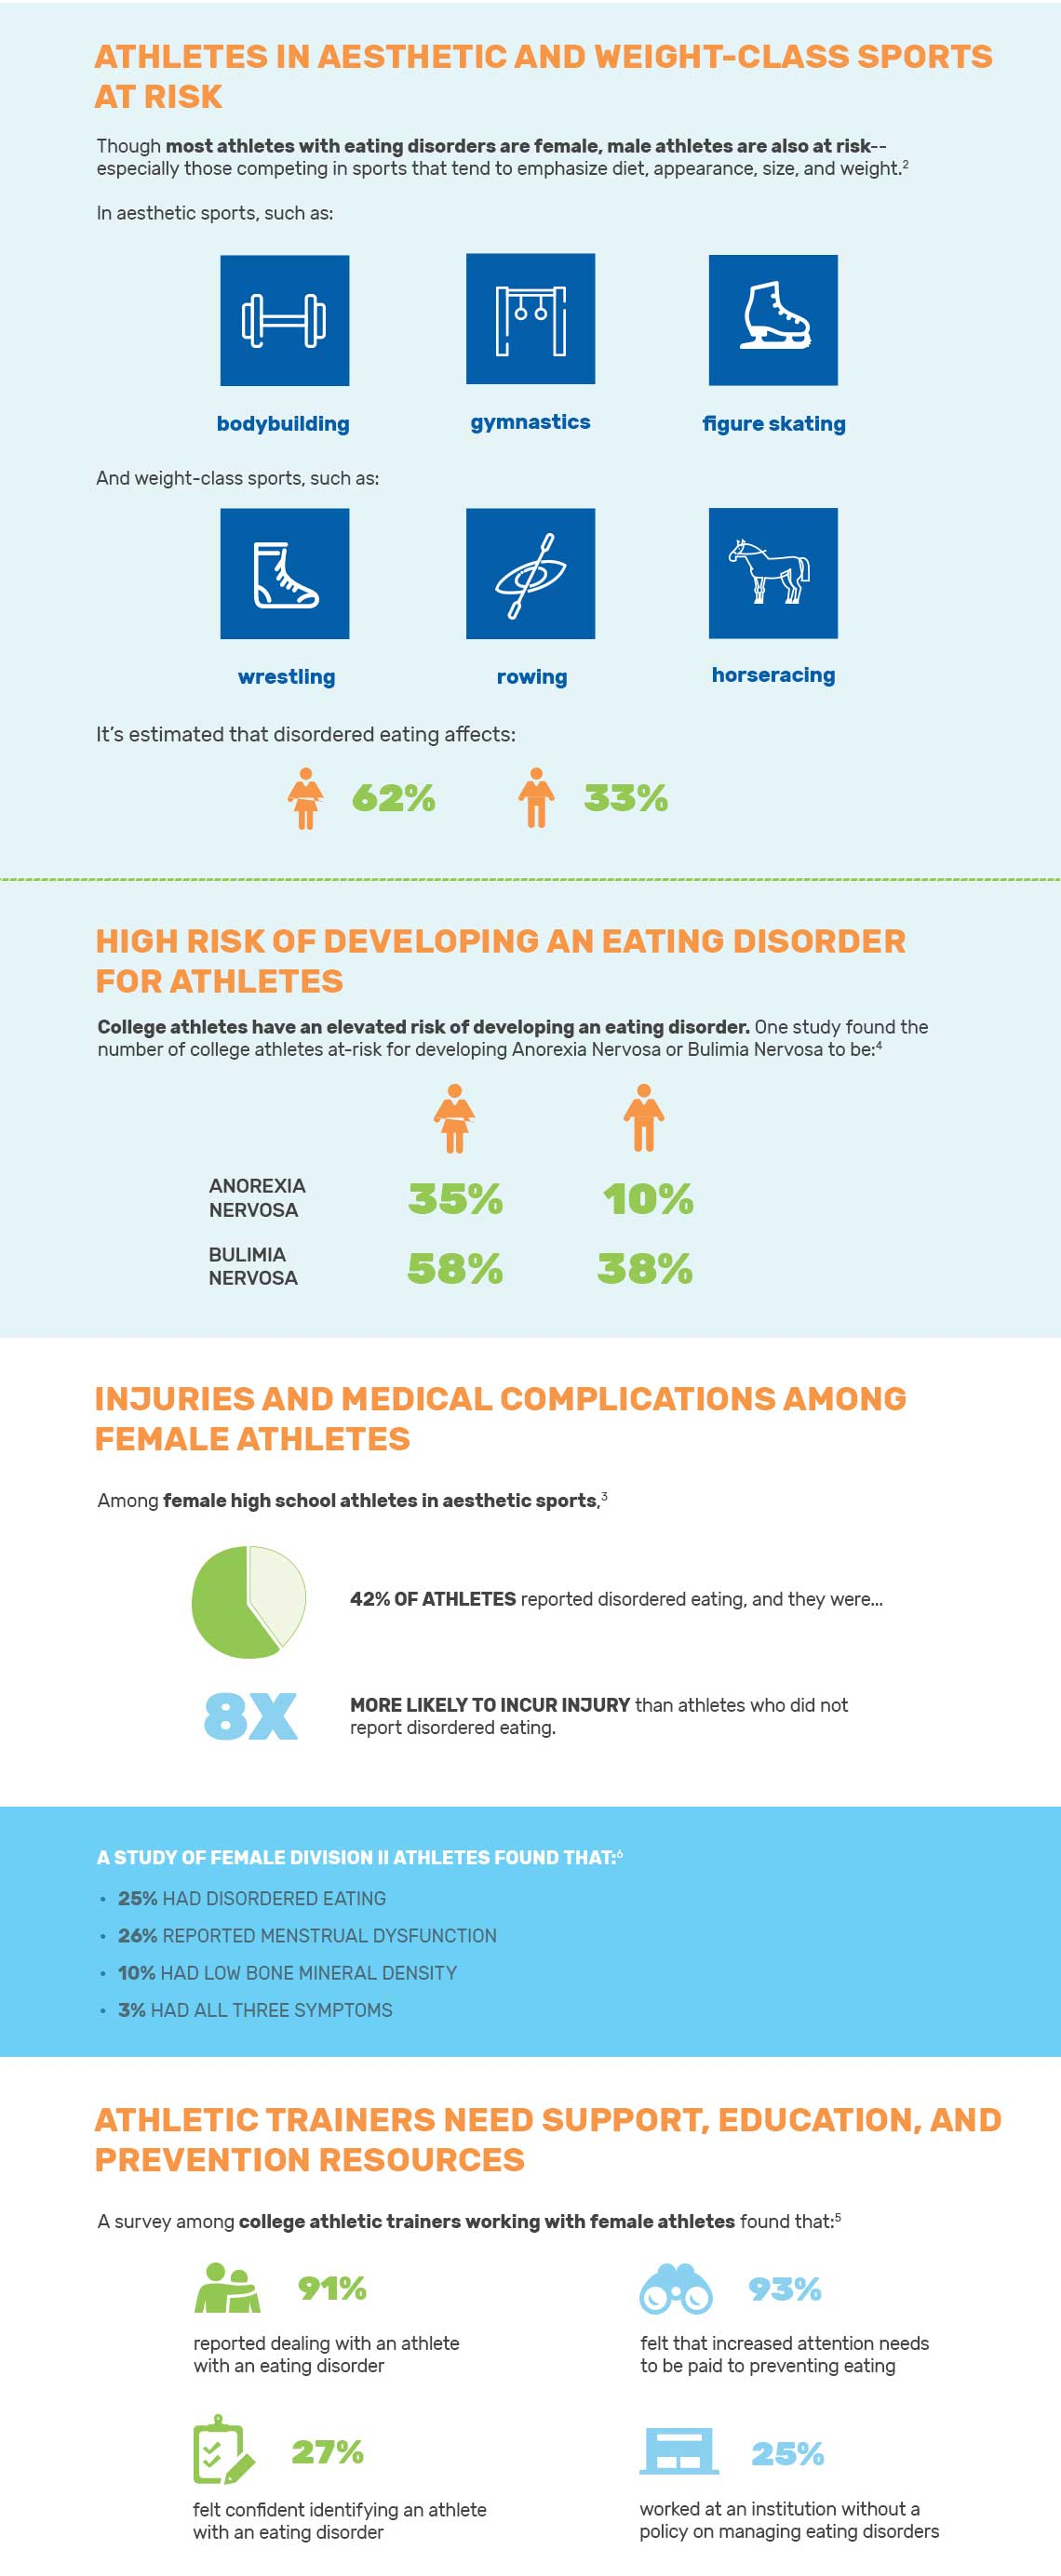 eating disorders in athletes Research suggests that more than a third of female division 1 ncaa athletes had  attitudes and symptoms putting them at risk for anorexia.